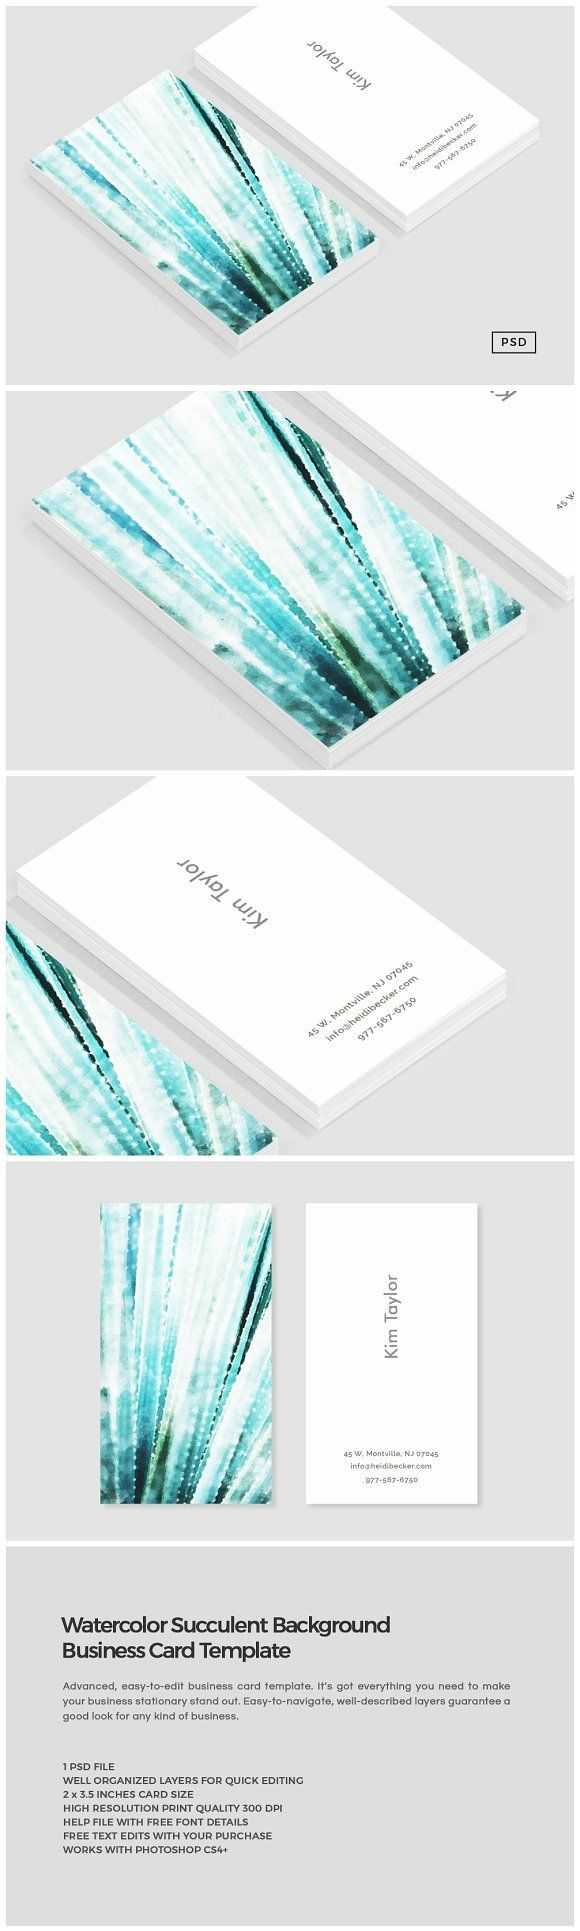 9365 best Professional Business Cards images on Pinterest | Business ...